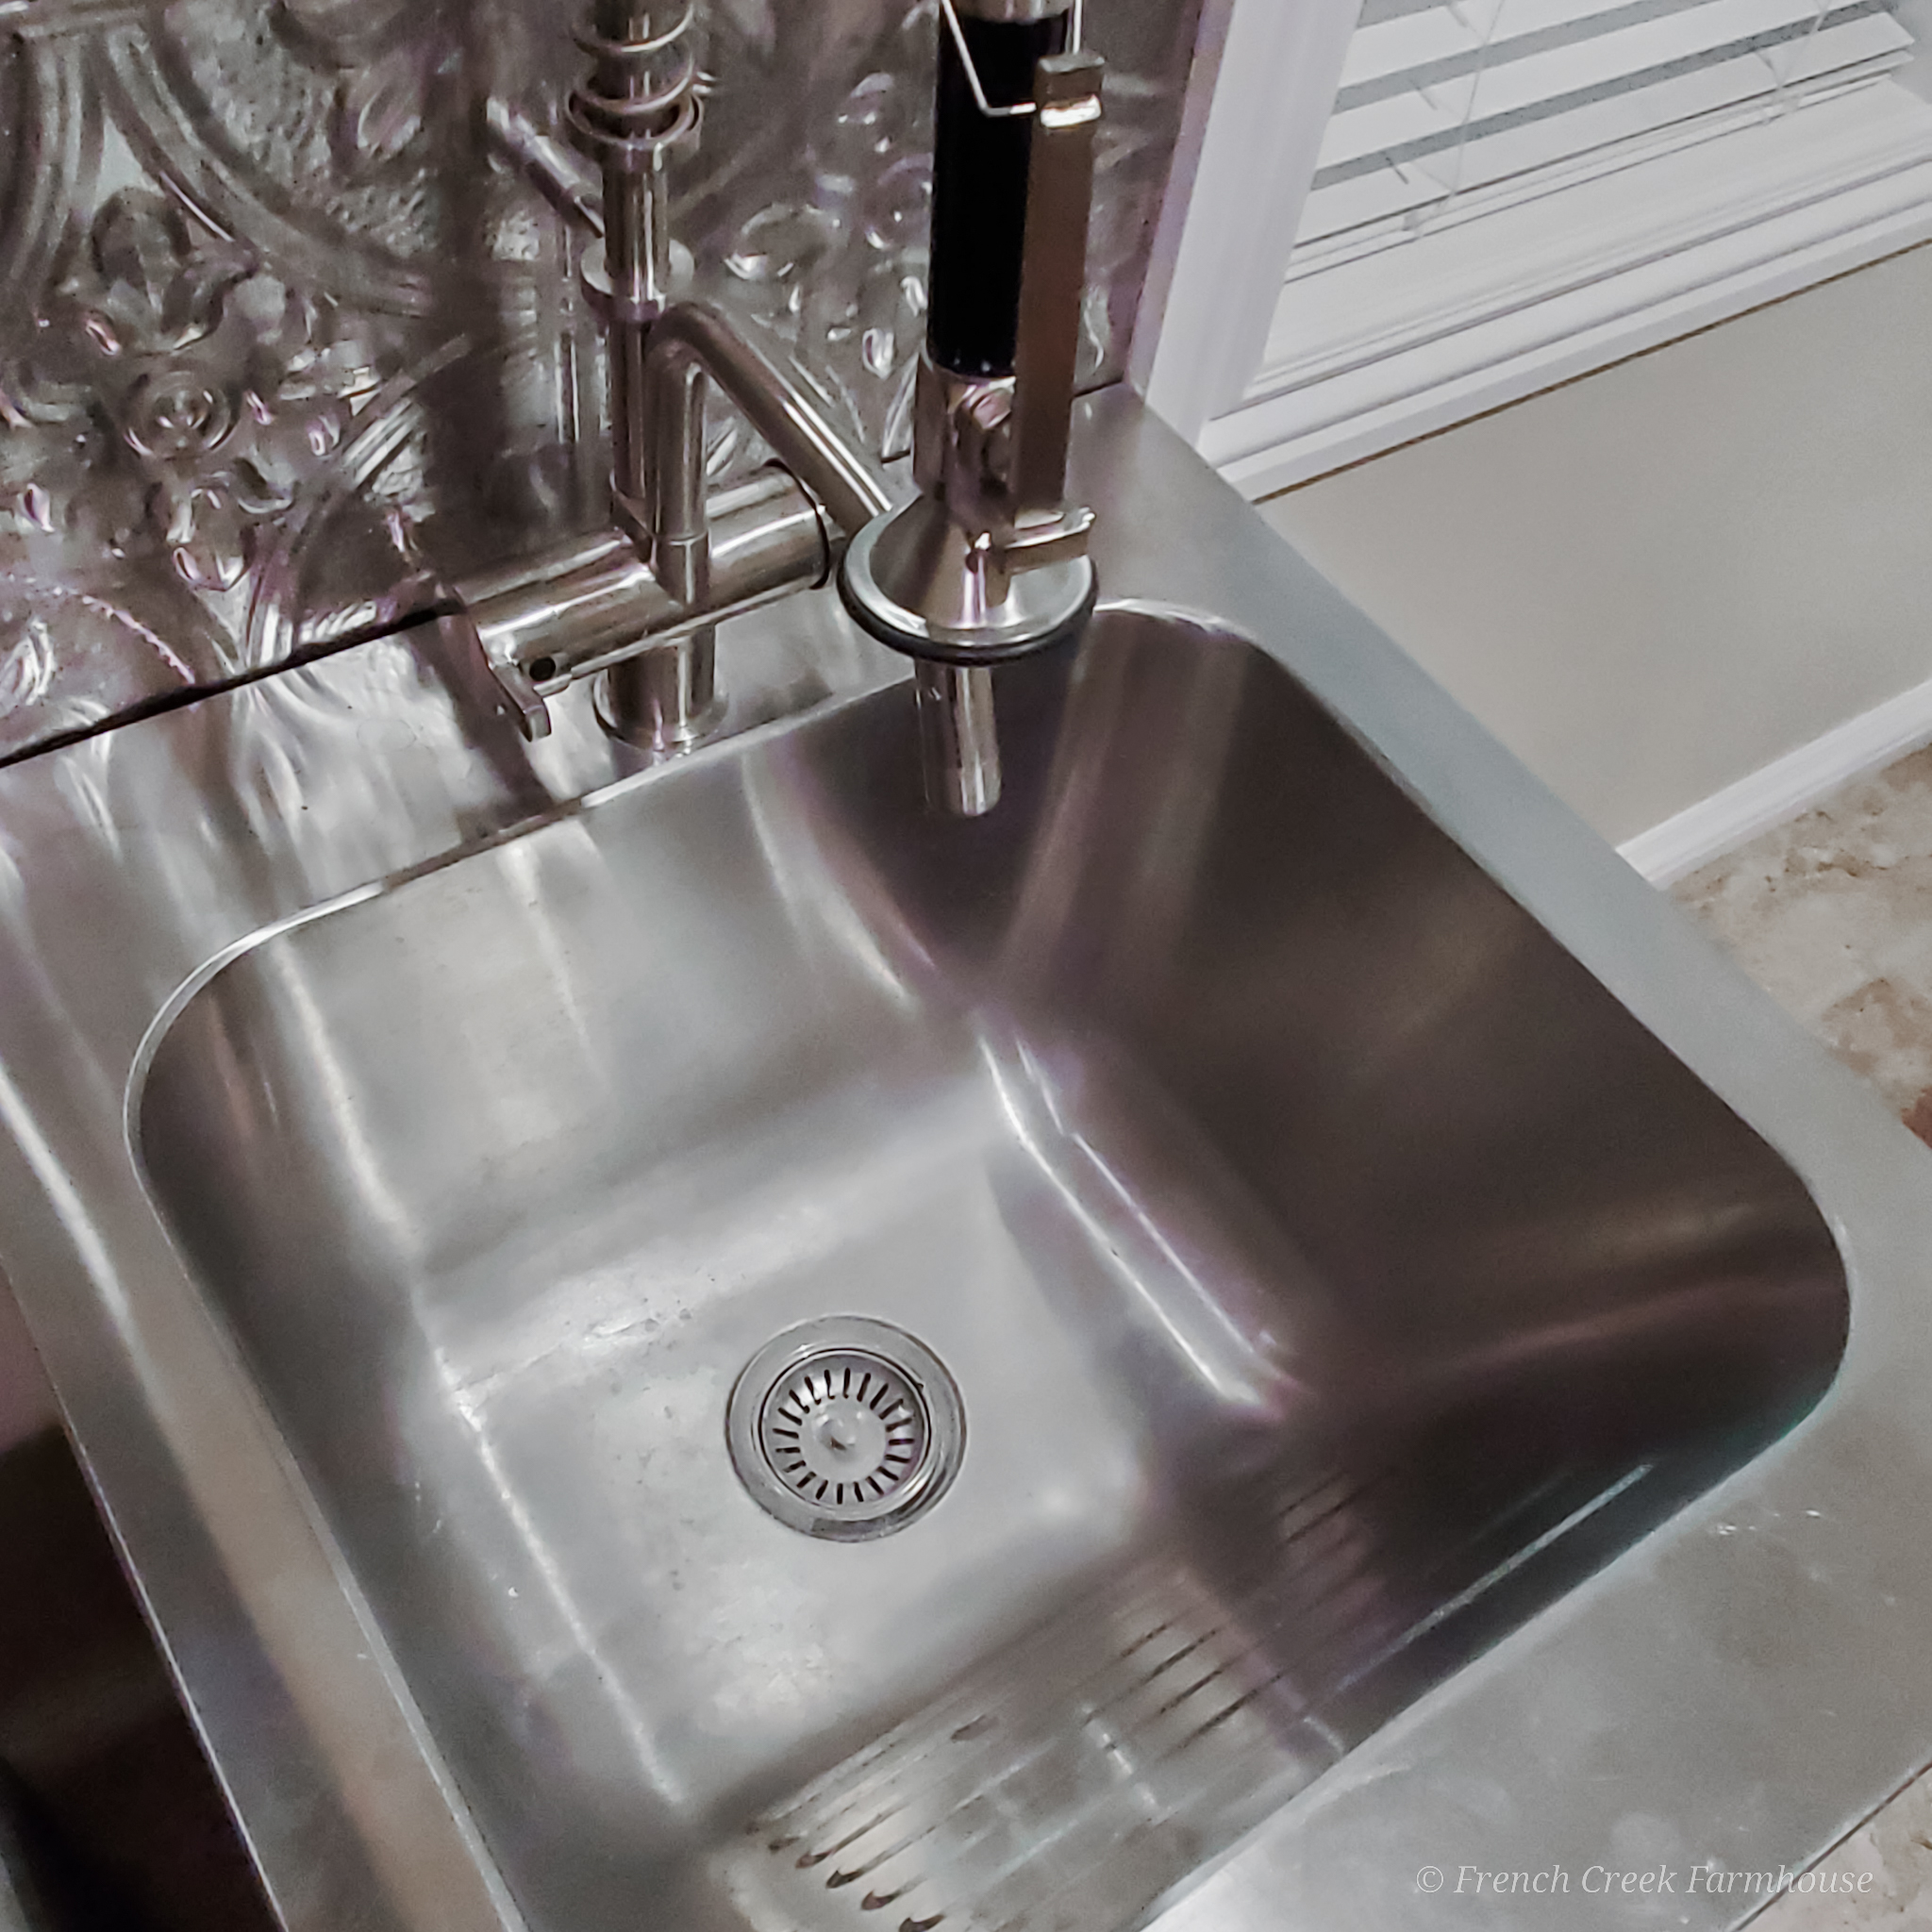 Laundry Room – Week Four: Doubt and the Utility Sink